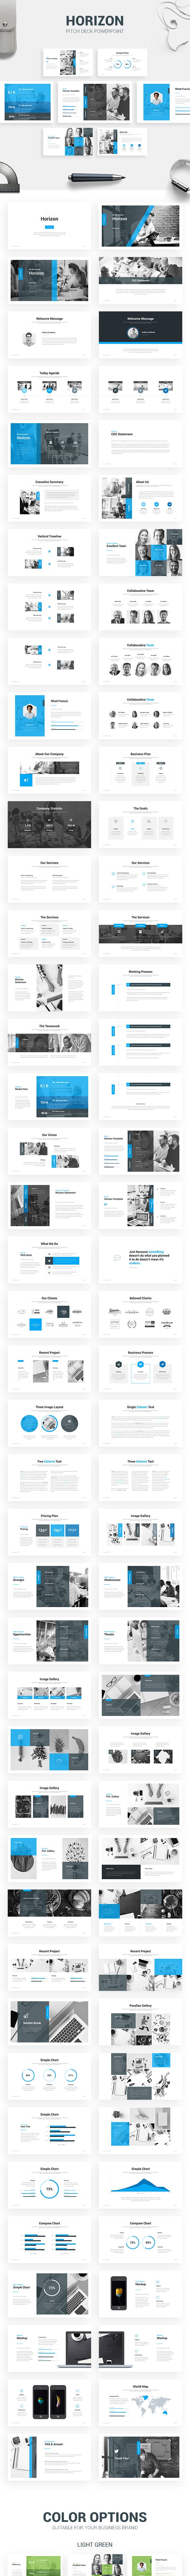 horizon pitch deck template by seventhin graphicriver